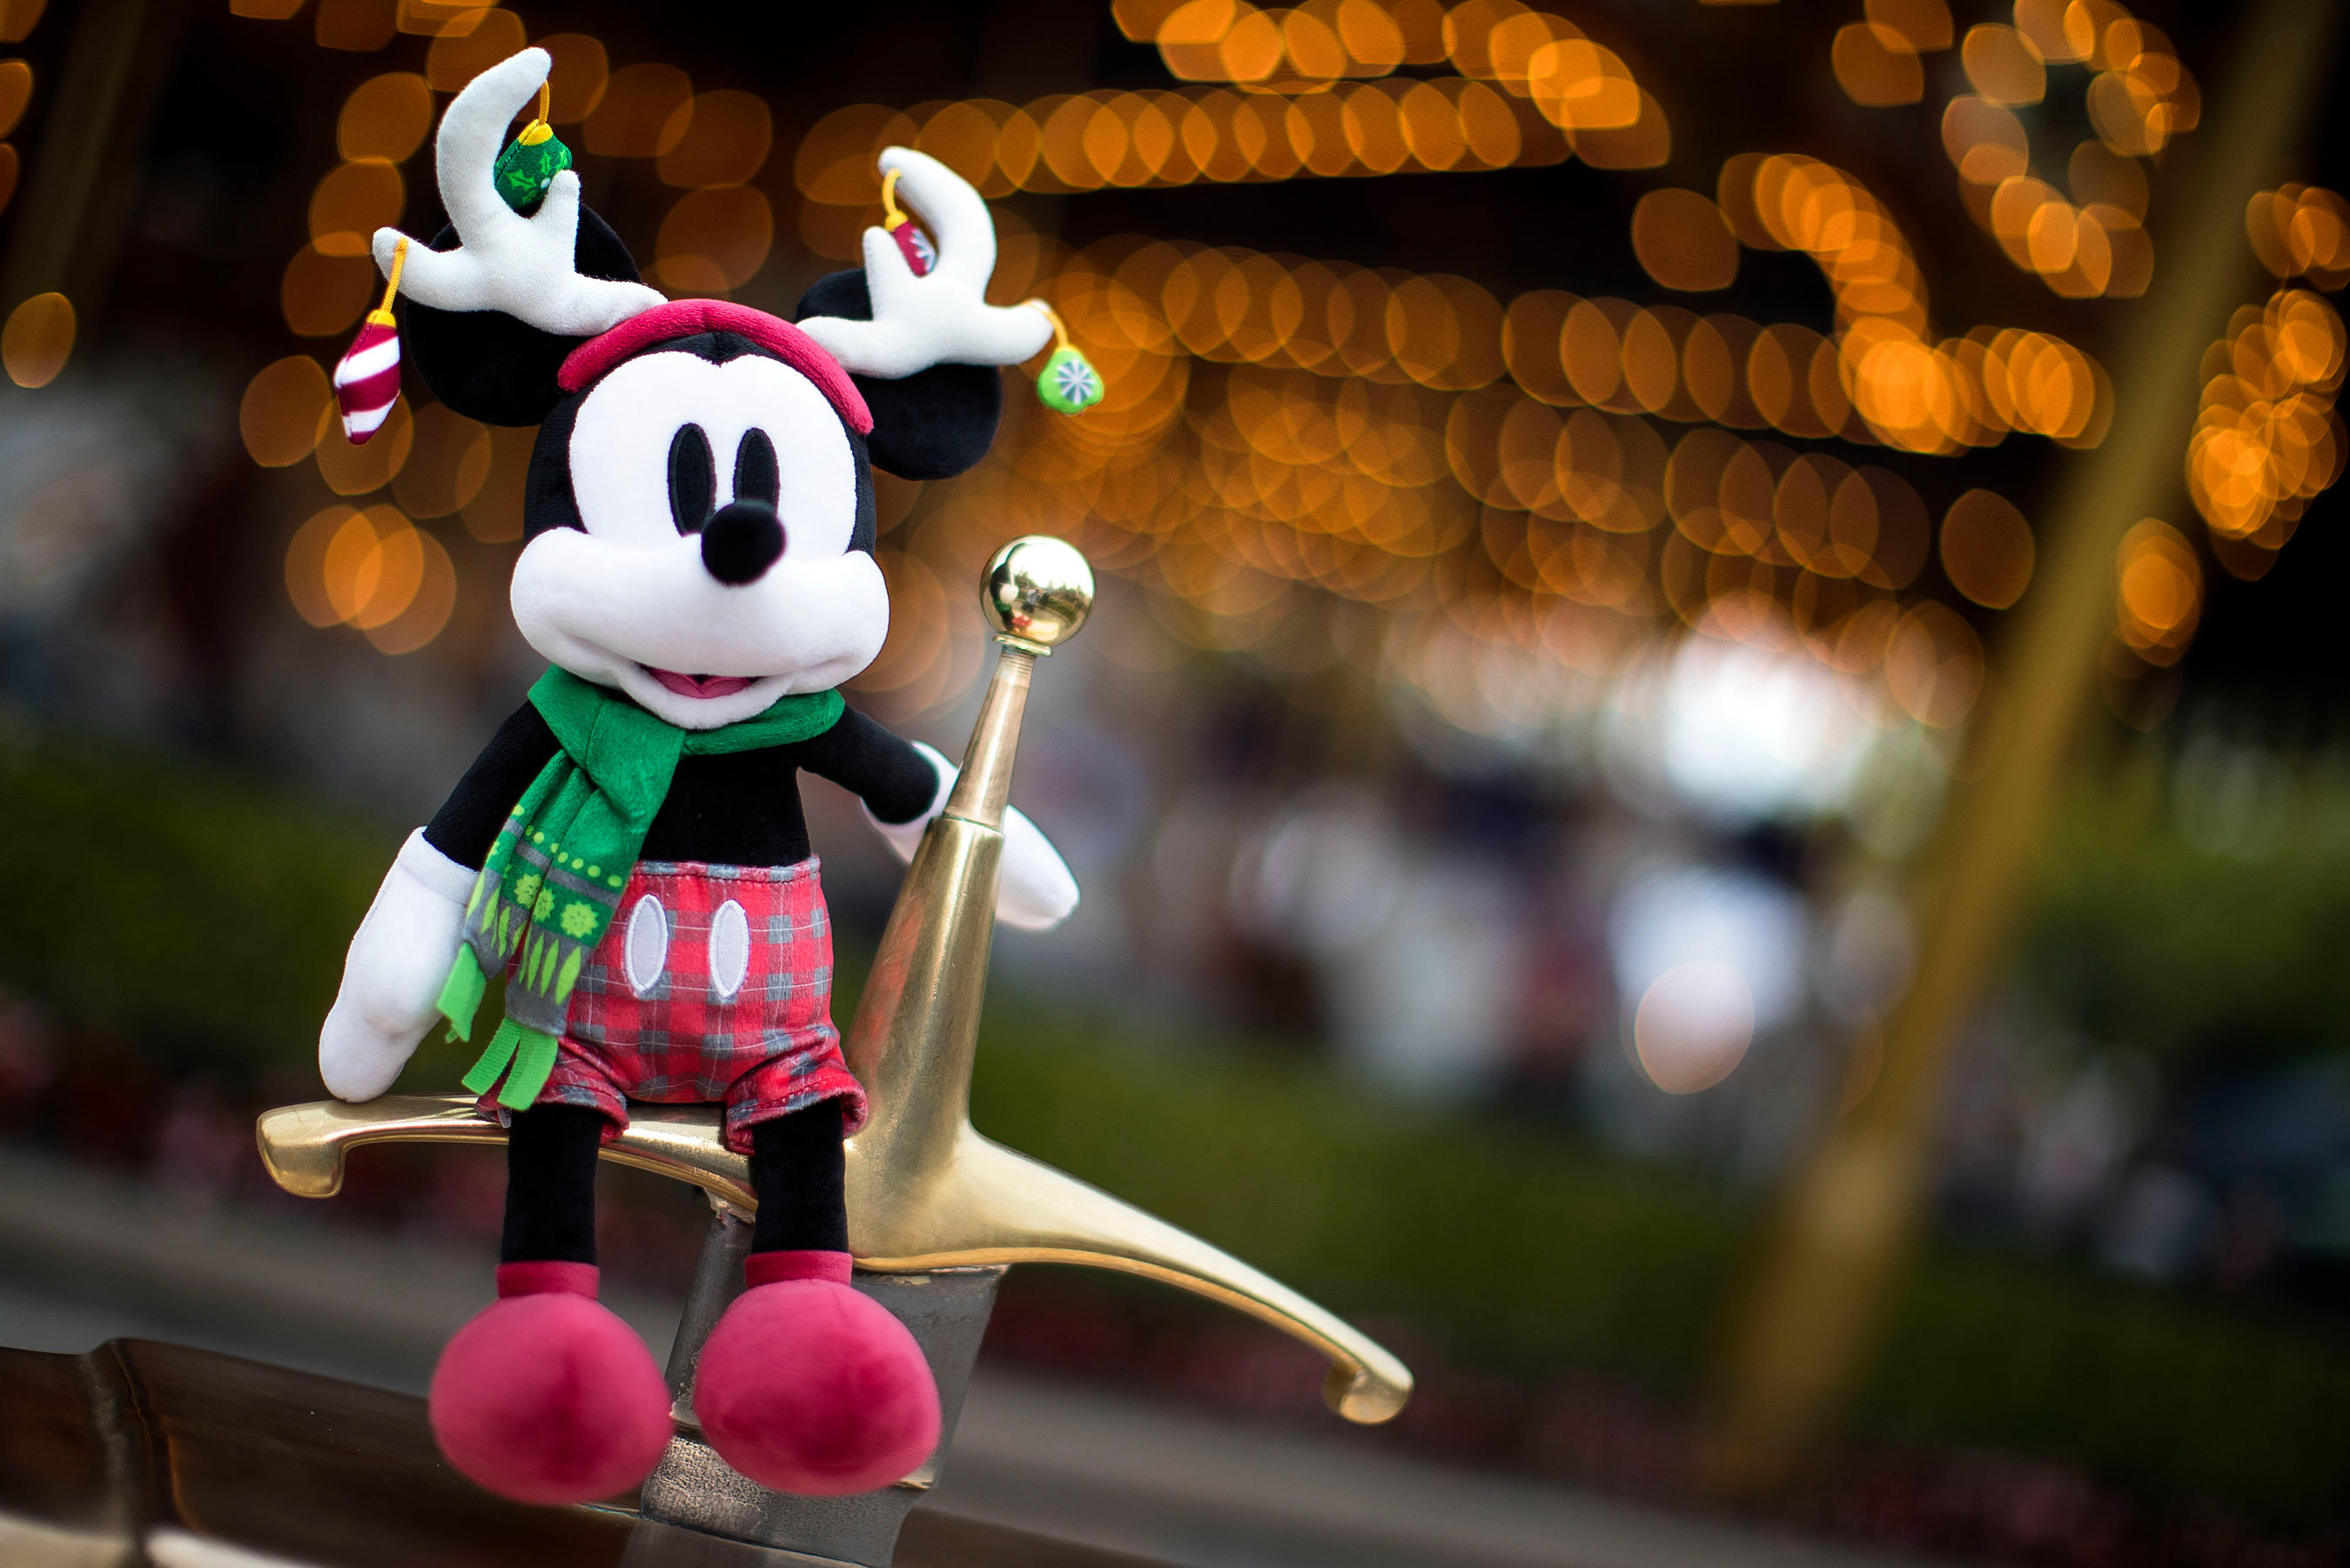 This stylish Mickey Mouse Holidays Plush is one of an assortment of Disney toys available for younger guests throughout Disneyland Resort in California and Walt Disney World Resort in Florida during the holiday season. Other items for young guests include a Disneyland Resort castle playset, a variety of figurine sets and more. (Joshua Sudock/Disneyland Resort)